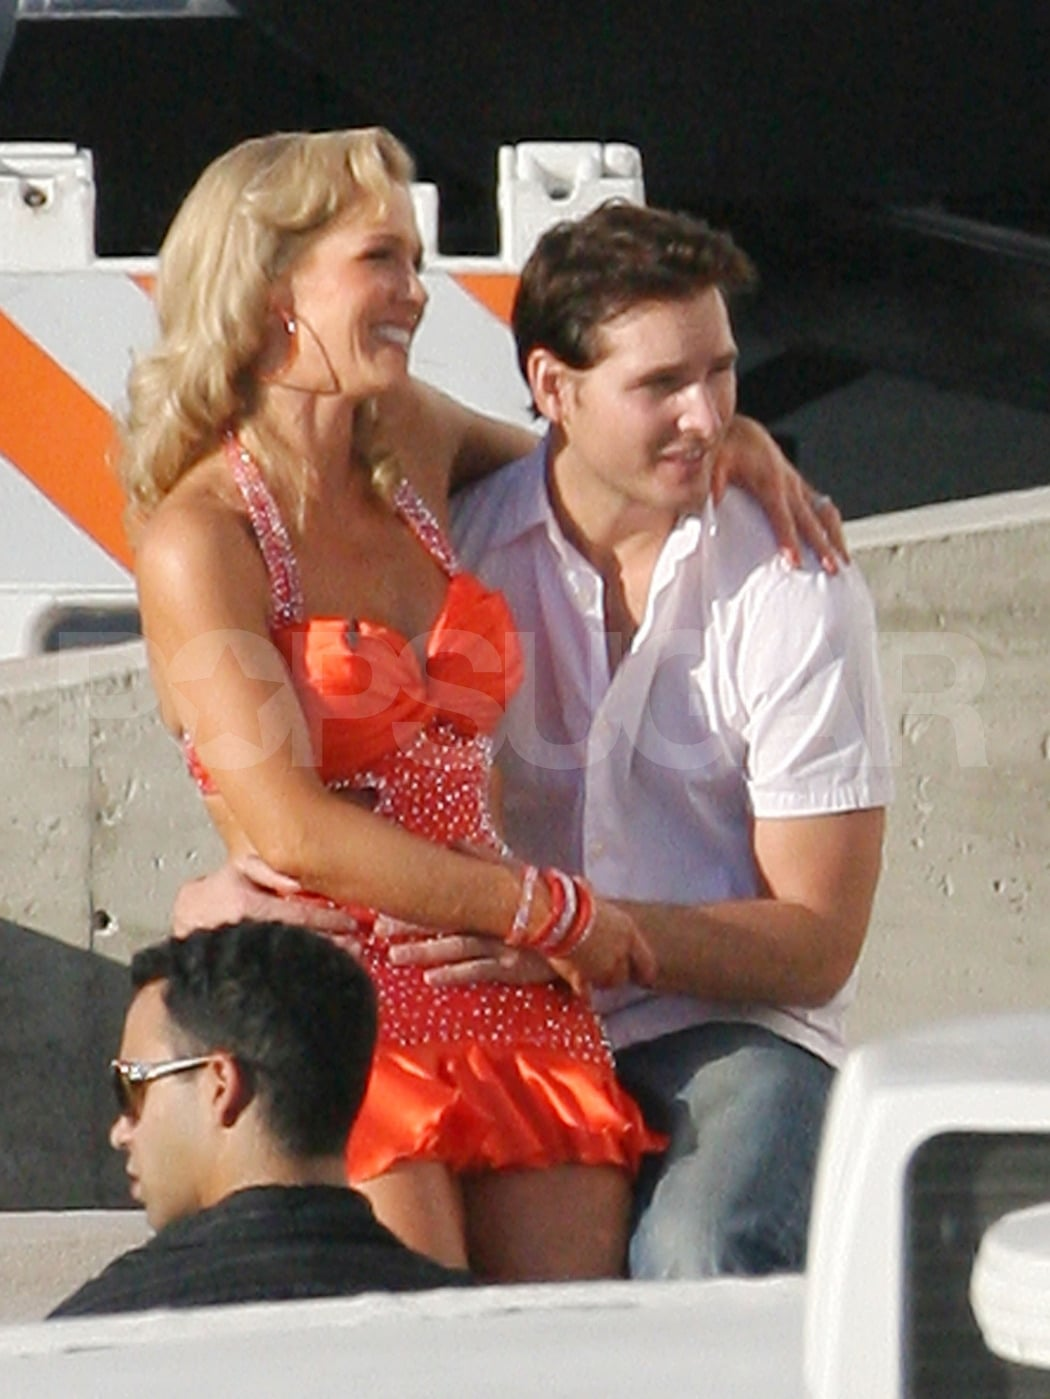 Peter Facinelli and Jennie Garth hung out between takes of her show Dancing With the Stars in Oct. 2007.